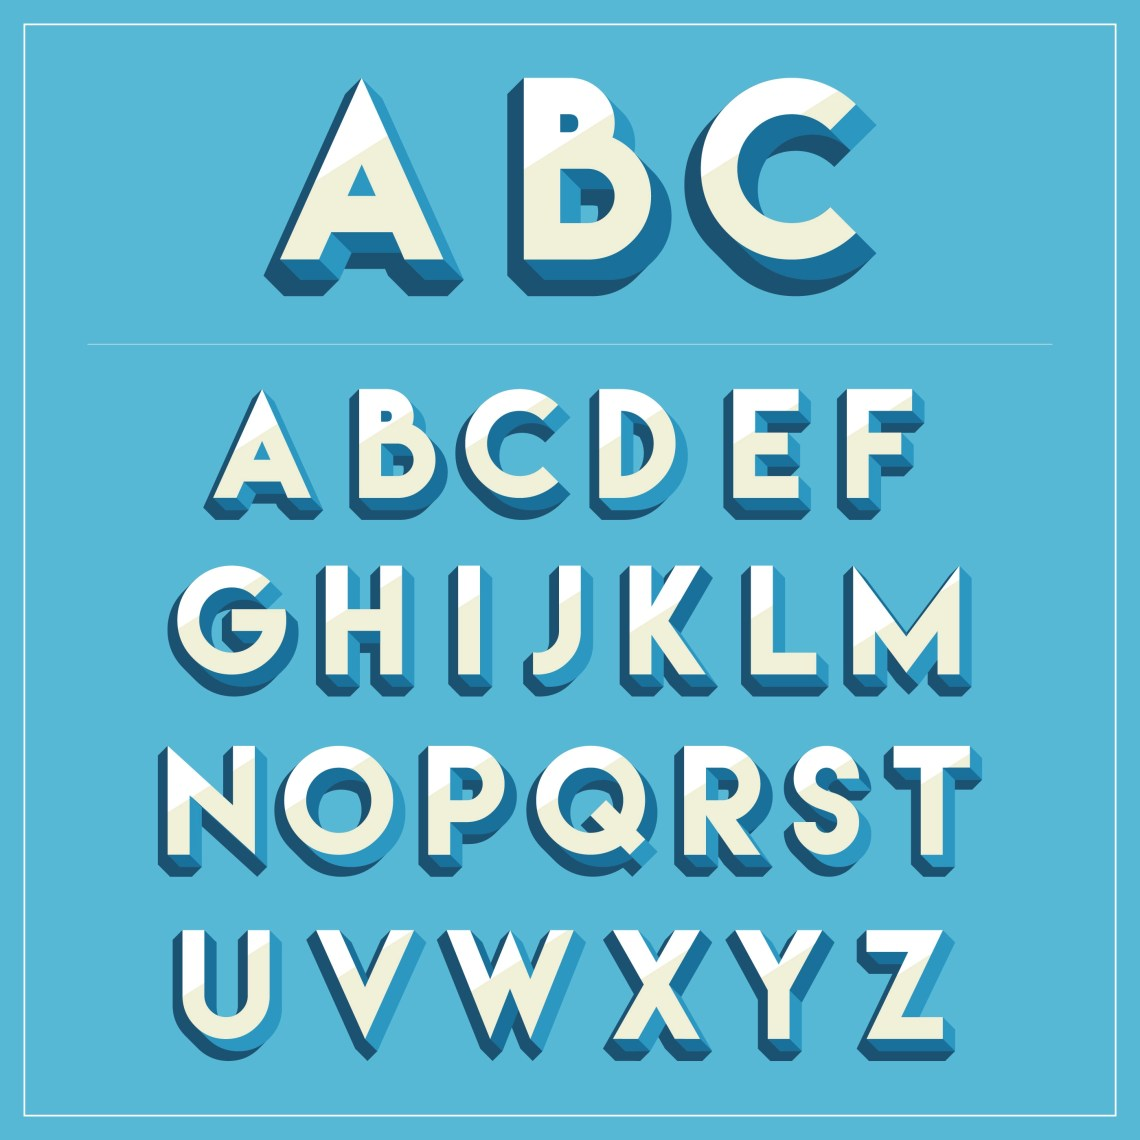 Download 3d Fonts Free Vector Art - (3813 Free Downloads)